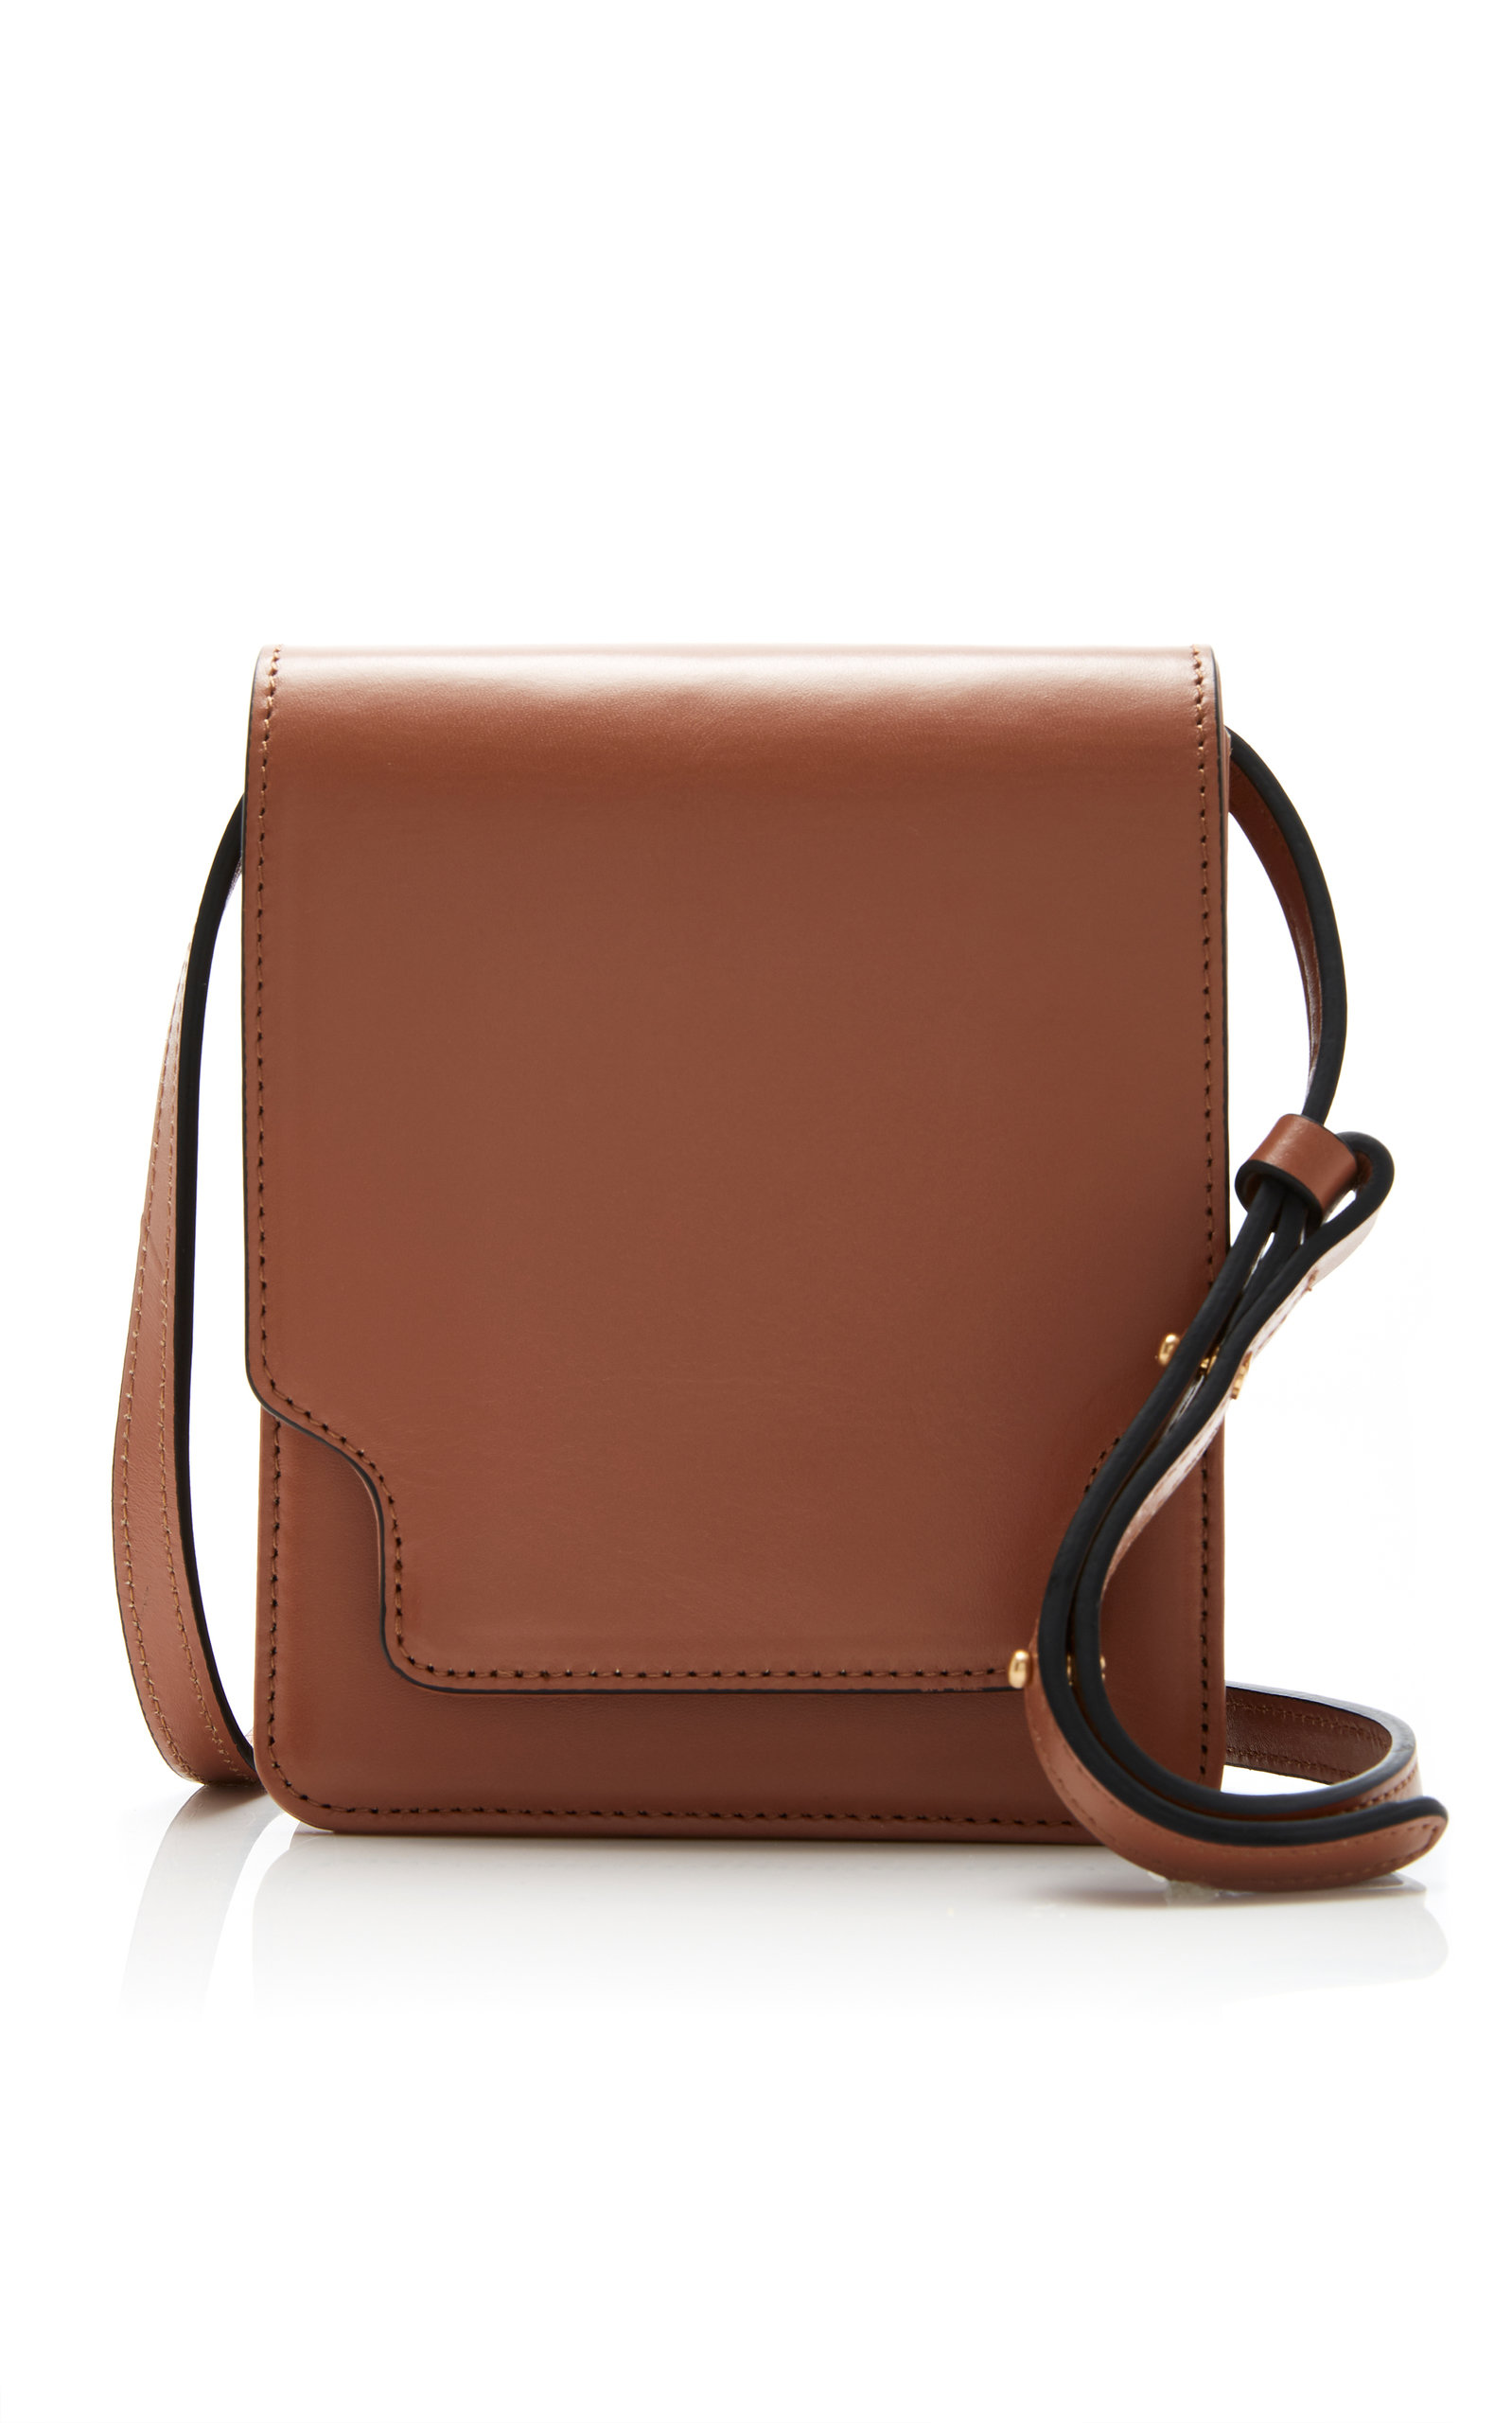 structural disablities speical offer perfect quality Pump Classic Leather Crossbody Bag